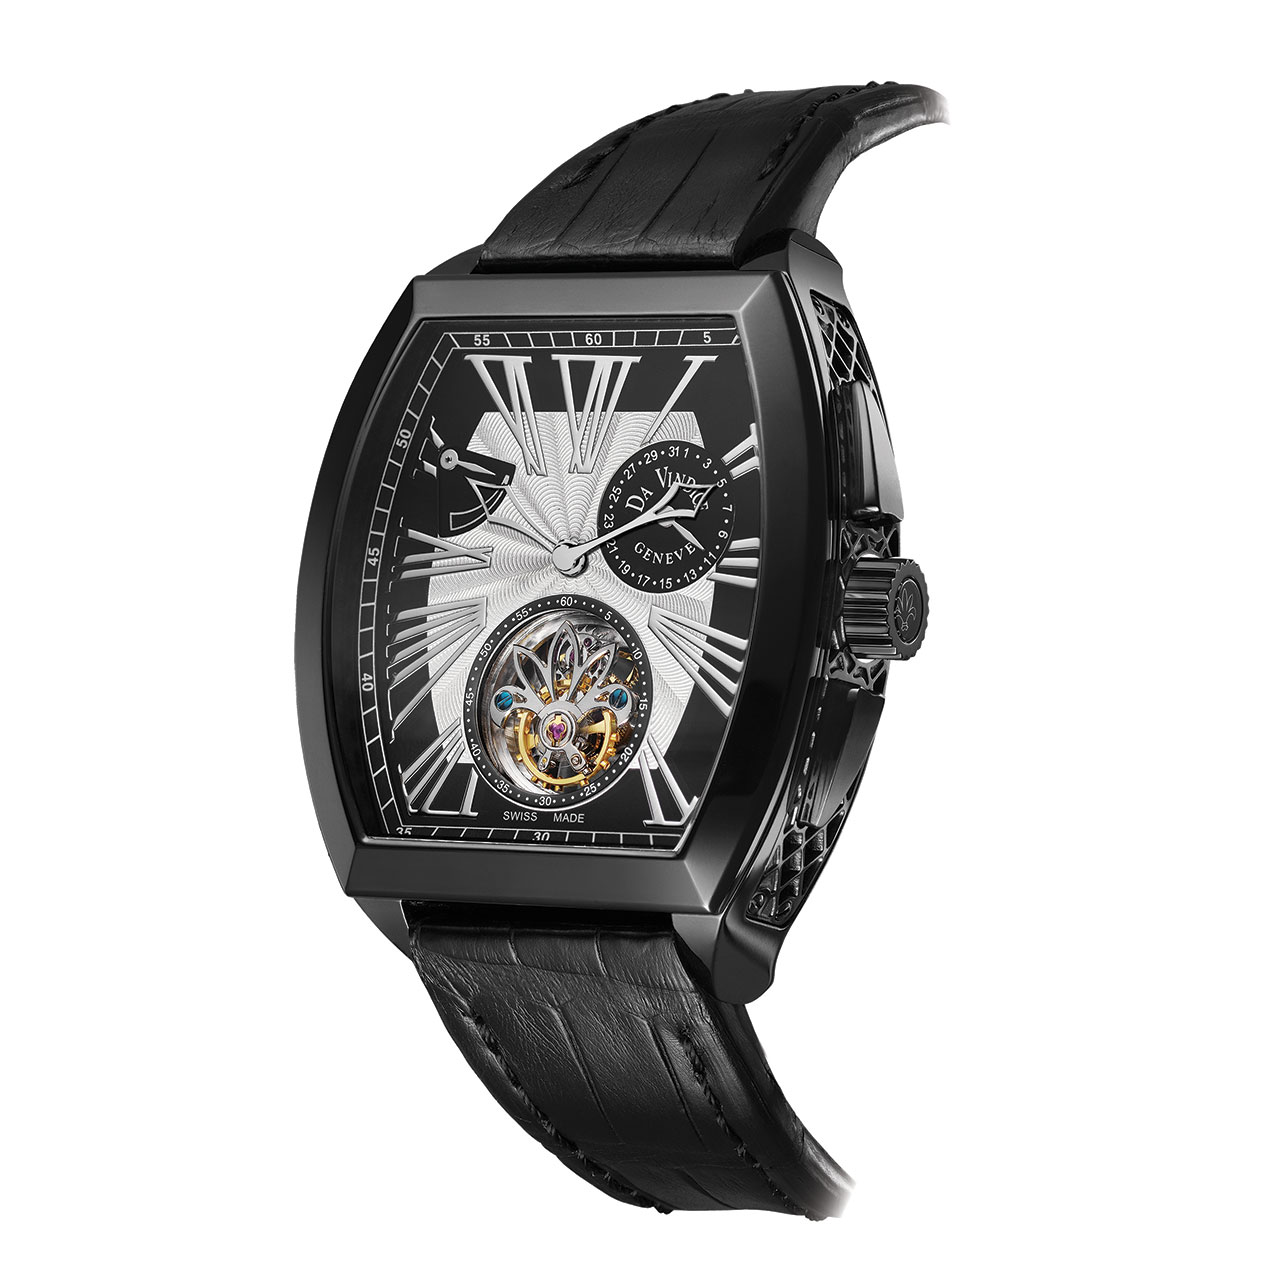 Da Vindice Geneve The Vindex Tourbillon Automatic Watch